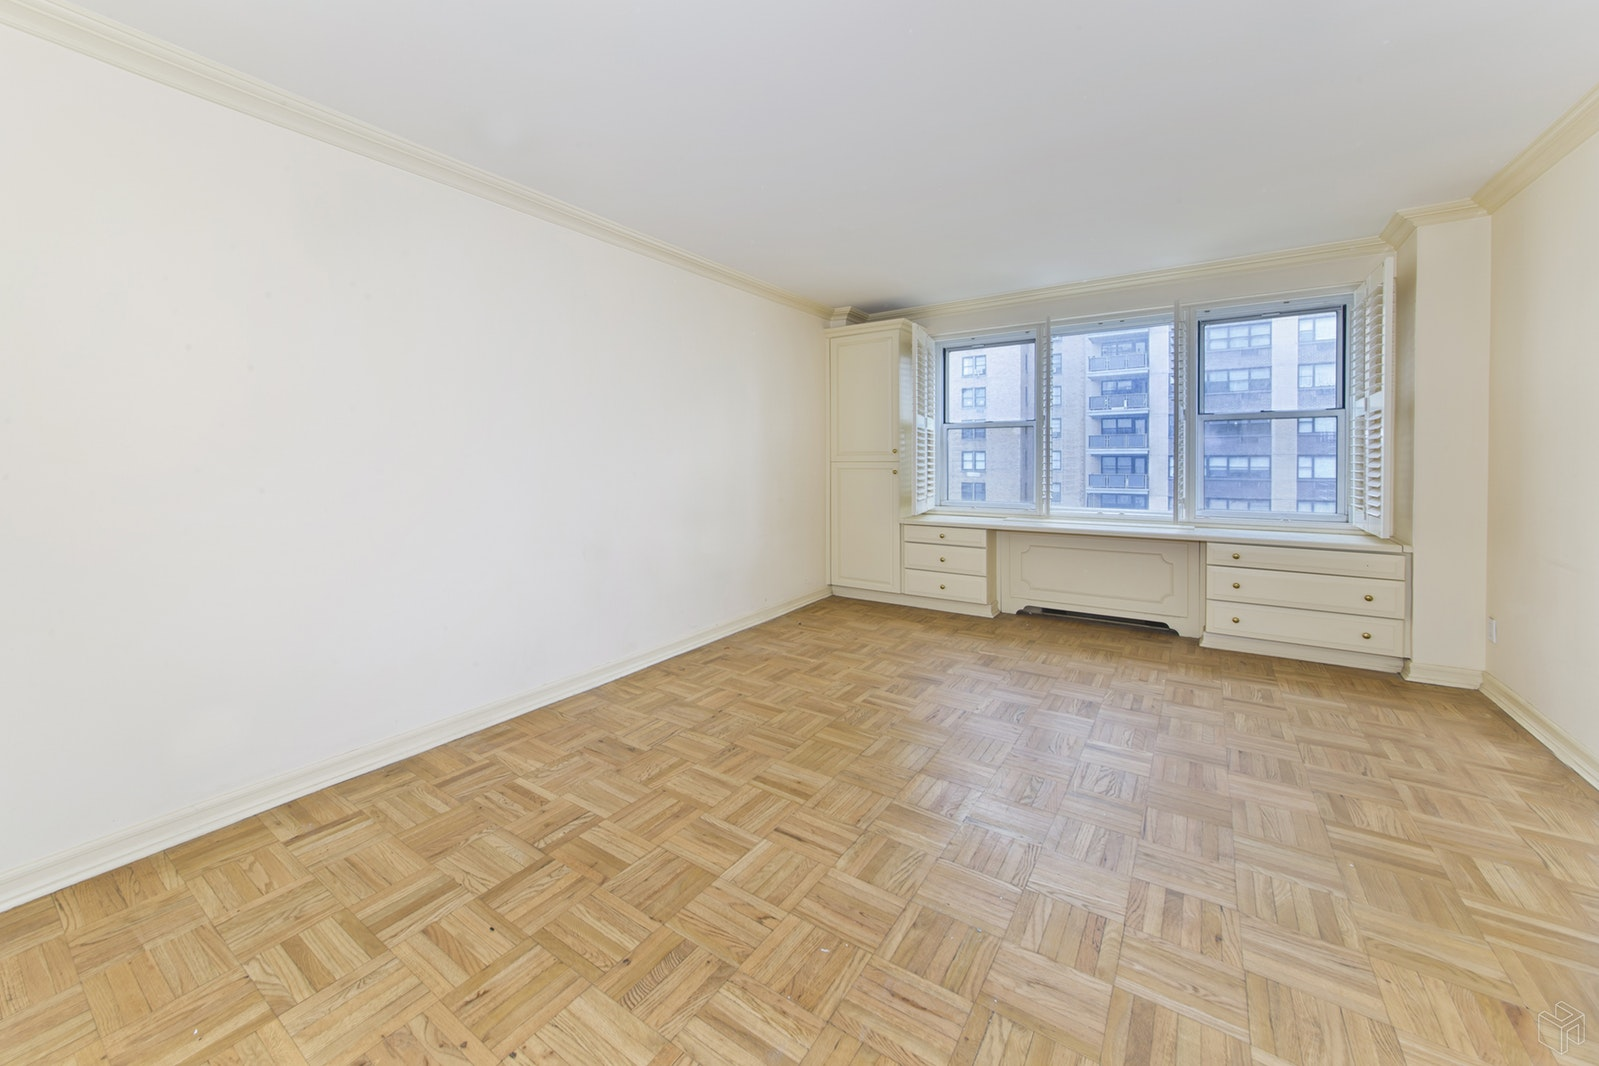 201 East 79th Street 8f, Upper East Side, NYC, 10075, $1,395,000, Sold Property, Halstead Real Estate, Photo 4